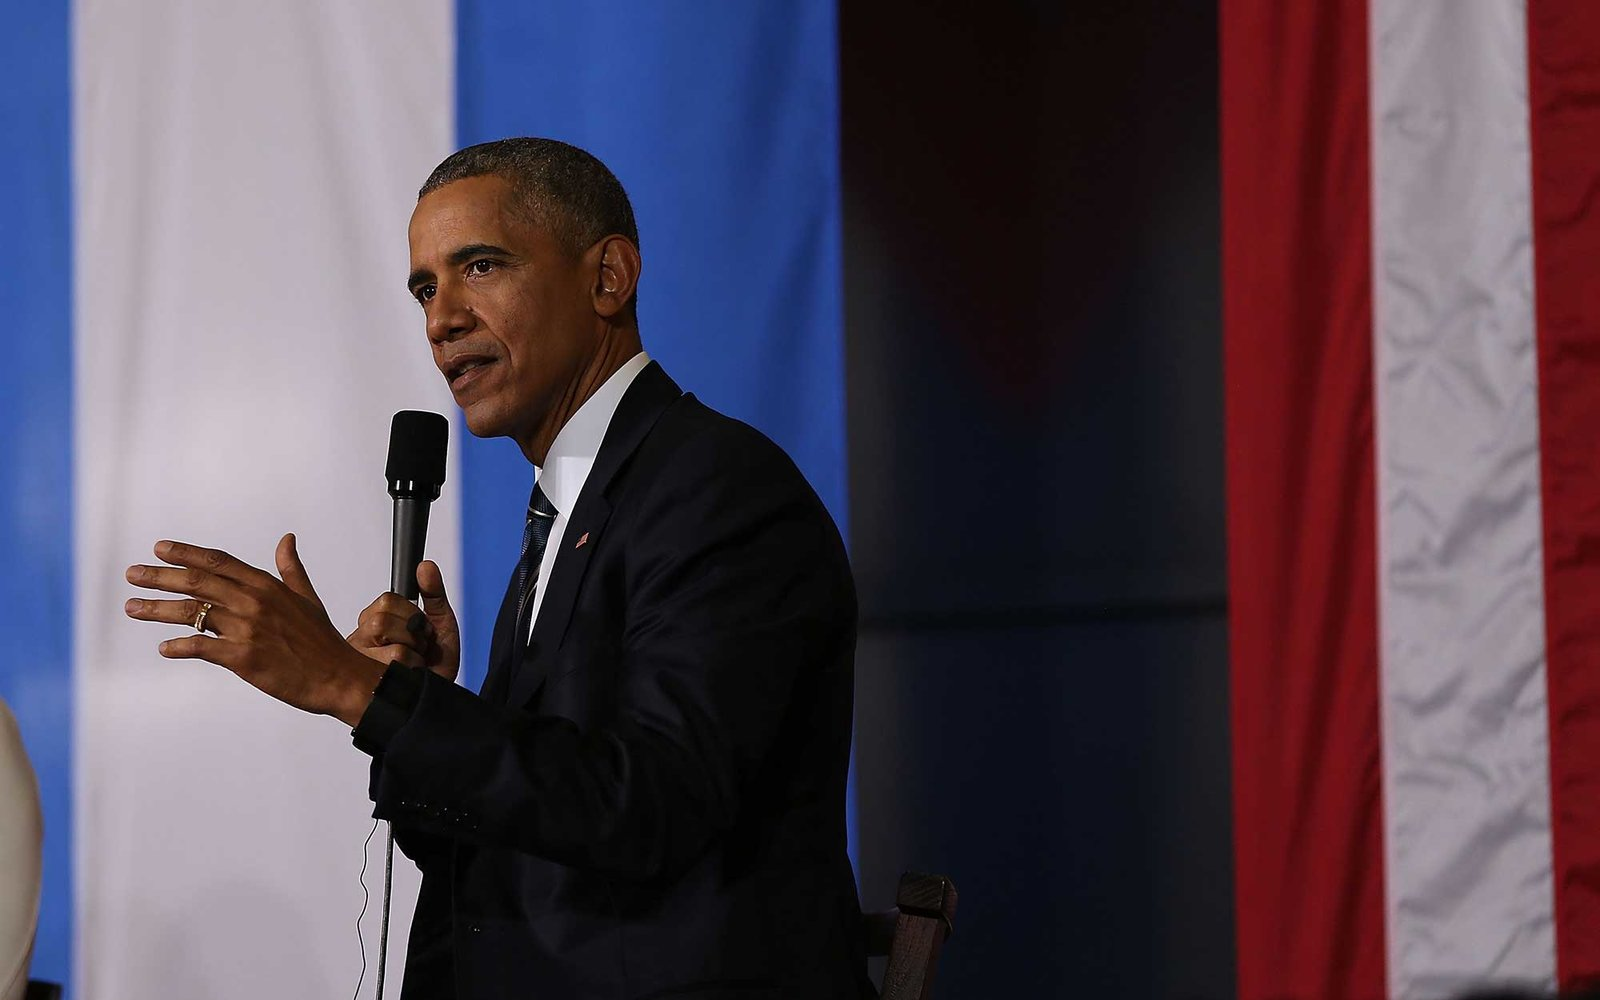 HAVANA, CUBA - MARCH 21:  President Barack Obama takes part in an event focused on entrepreneurship and opportunity for the Cuban people at La Cervecera on March 21, 2016 in Havana, Cuba.   Mr. Obama's visit is the first in nearly 90 years for a sitting p